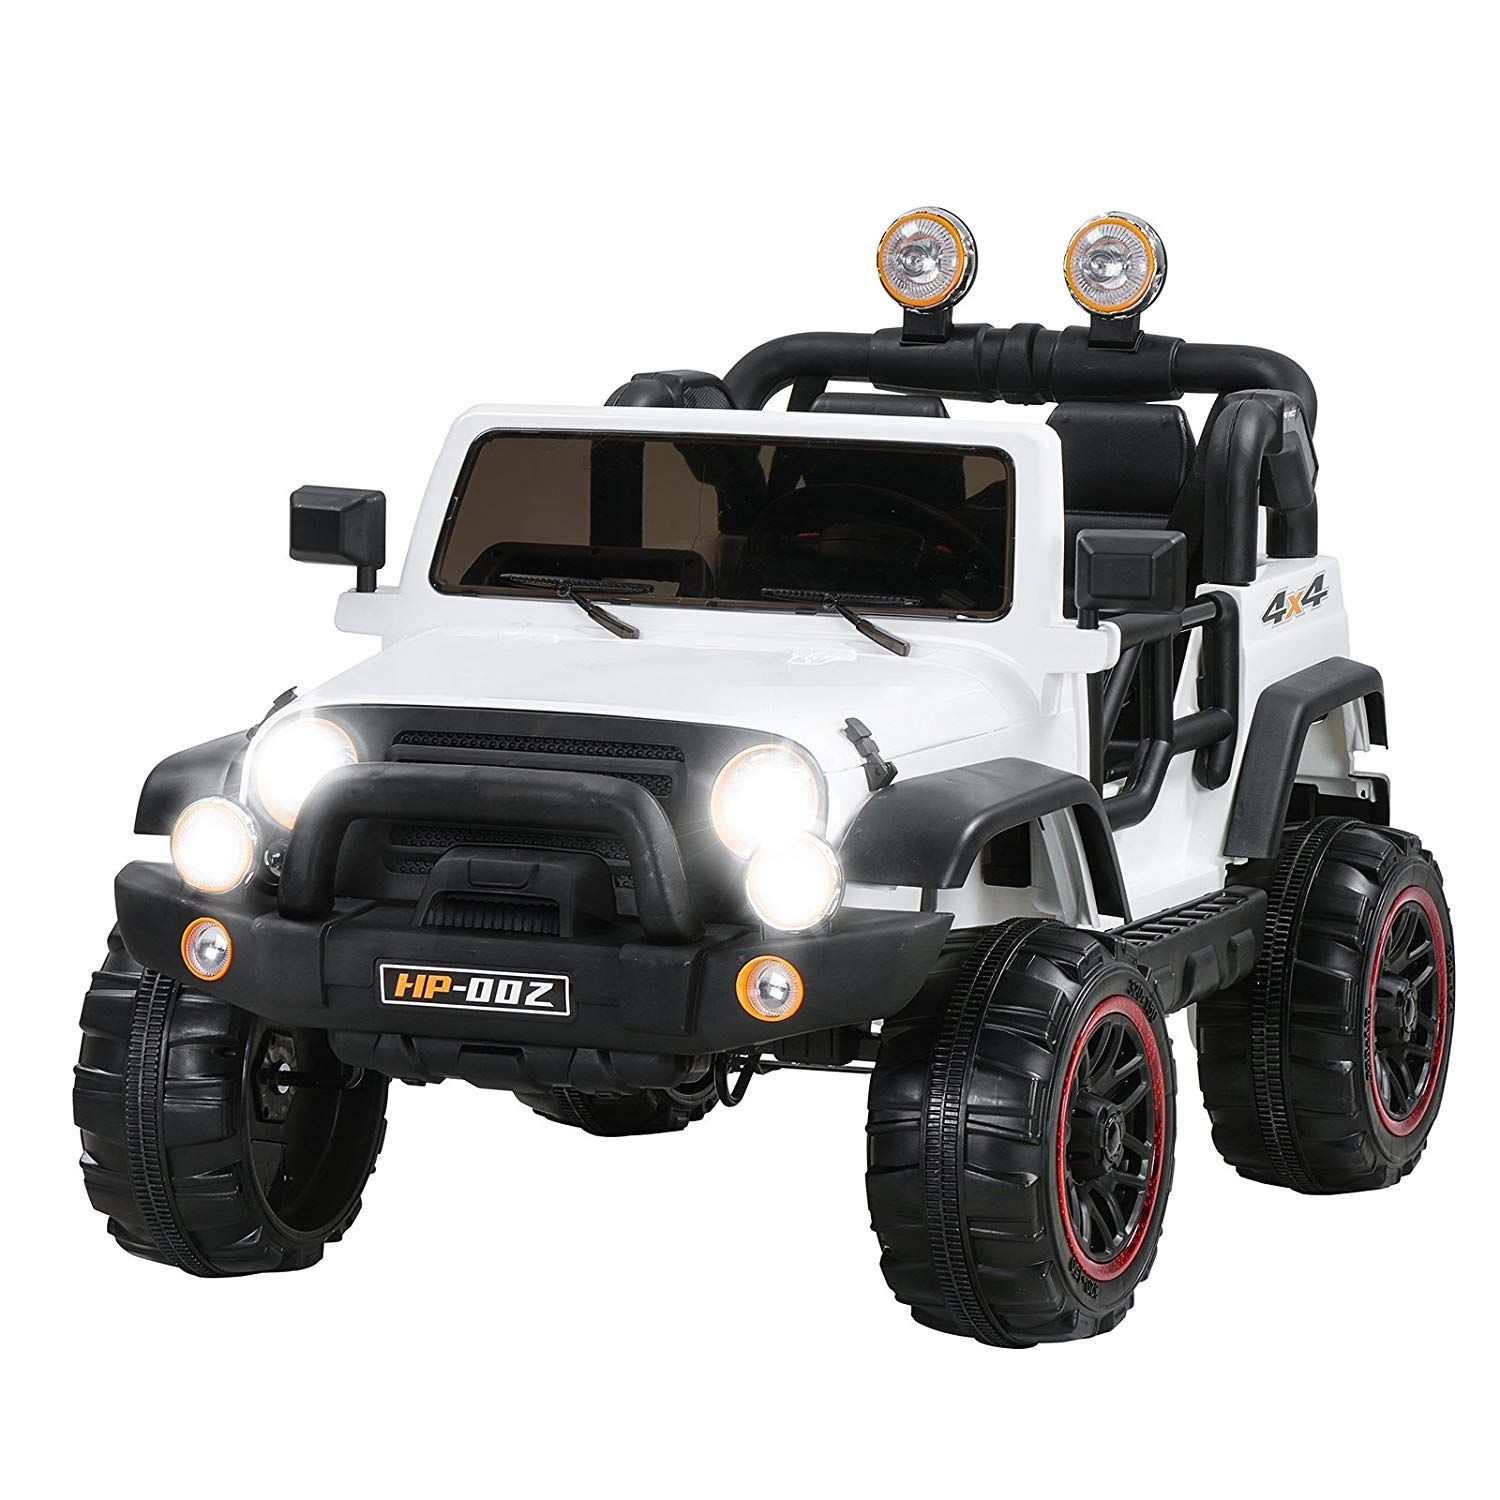 Jeep toys for kids  Uenjoy Jeeps Power Wheels V Childrenus Electric Cars Kidus Ride on